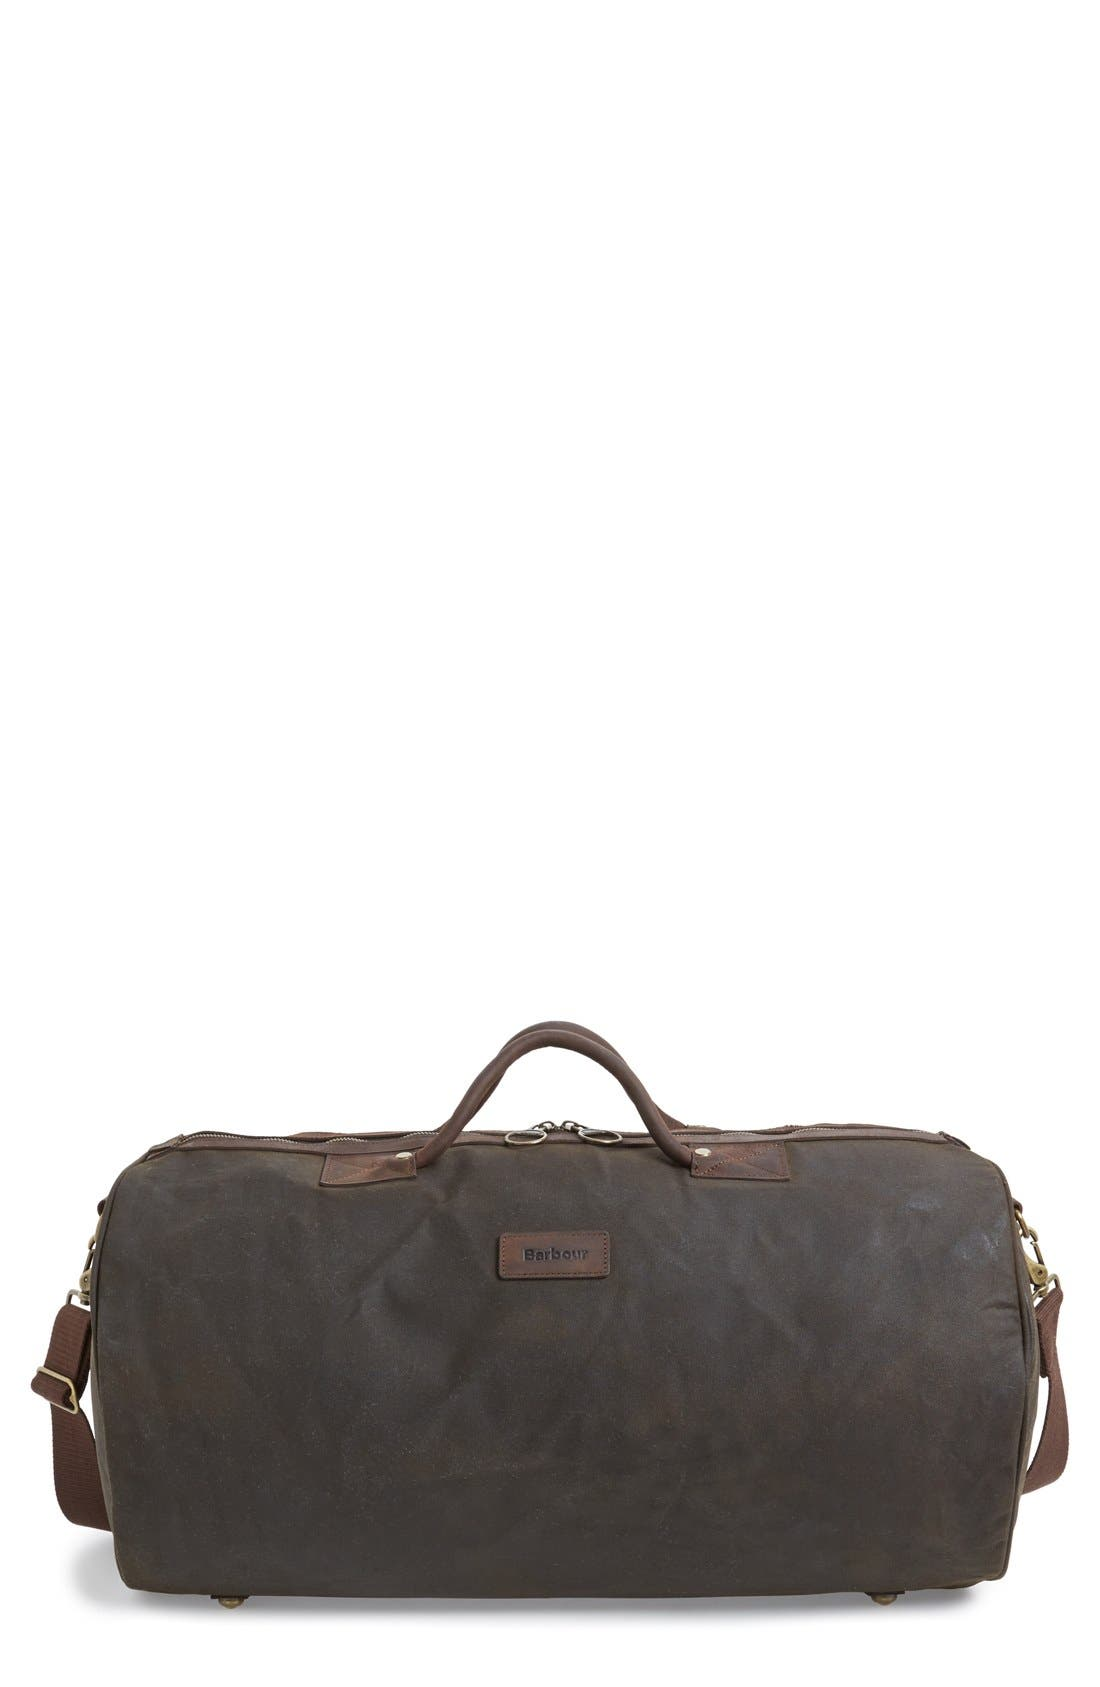 Waxed Canvas Duffel Bag,                         Main,                         color, Olive